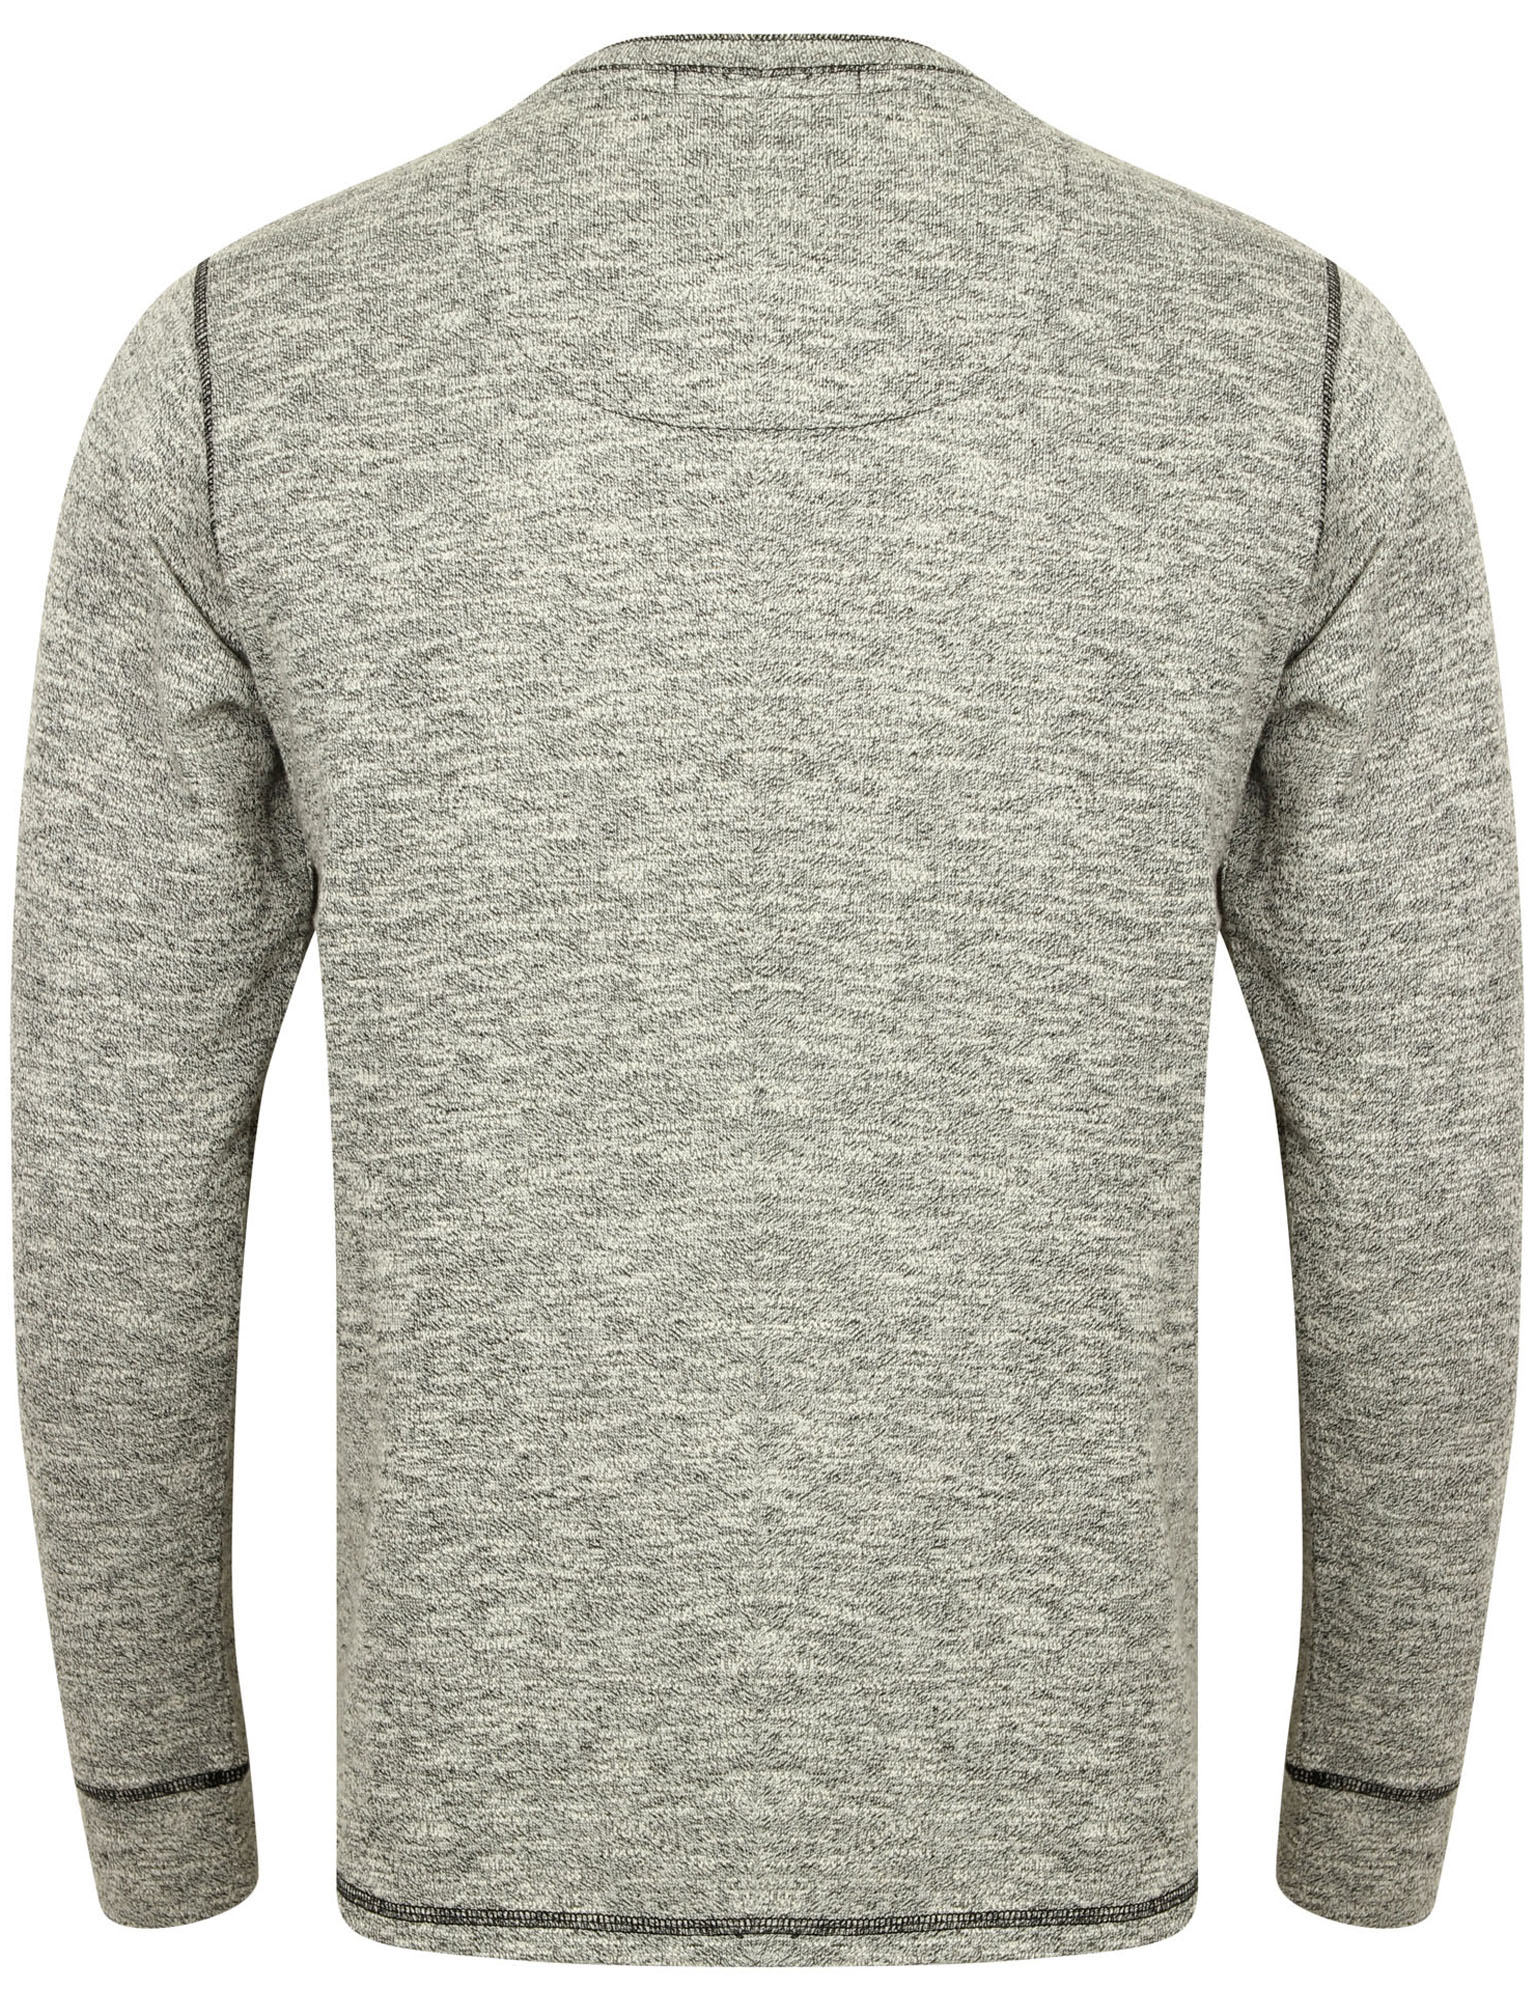 New-Mens-Tokyo-Laundry-Branded-Soft-Jersey-Long-Sleeve-Tops-T-Shirts-Size-S-XL thumbnail 23